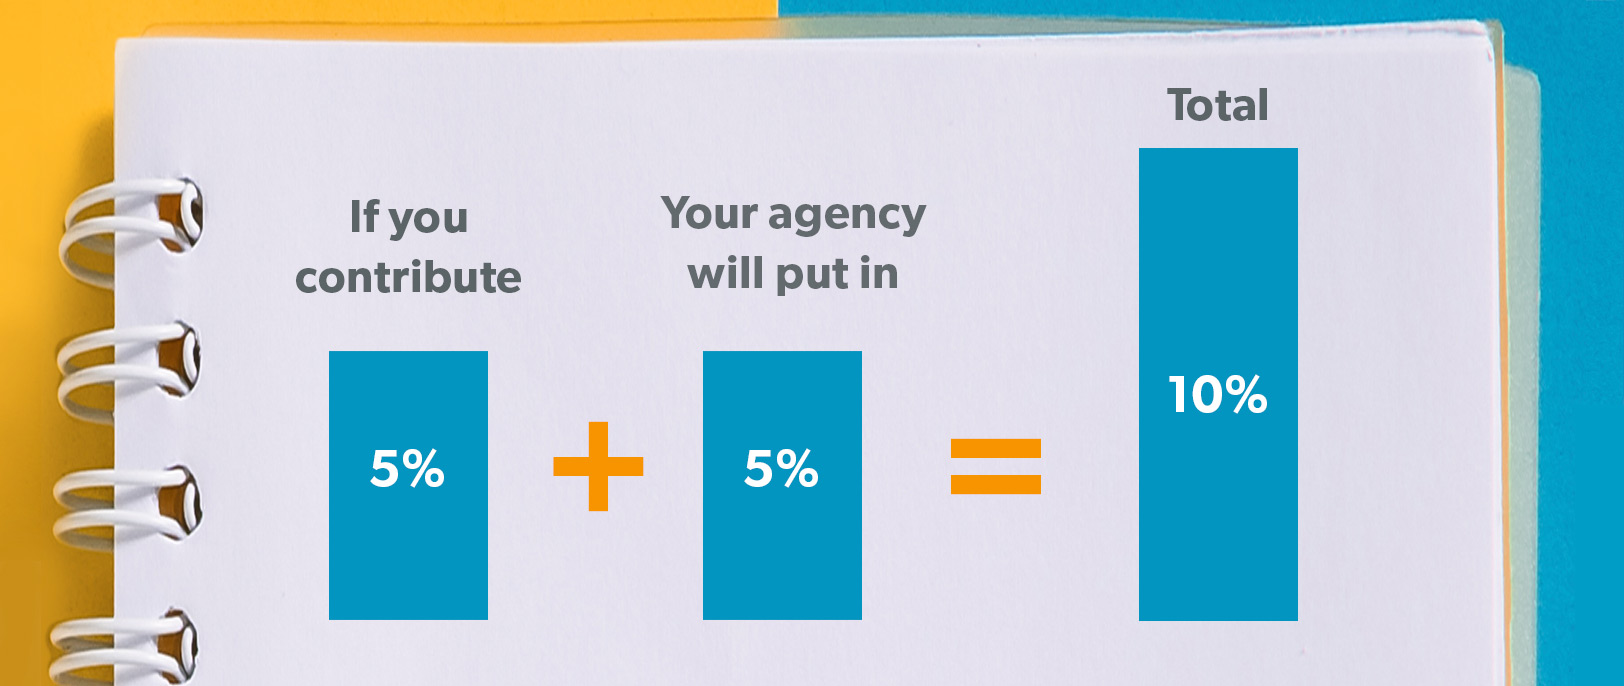 If you contribute 5% and your agency puts in 5%, your total contribution is 10%